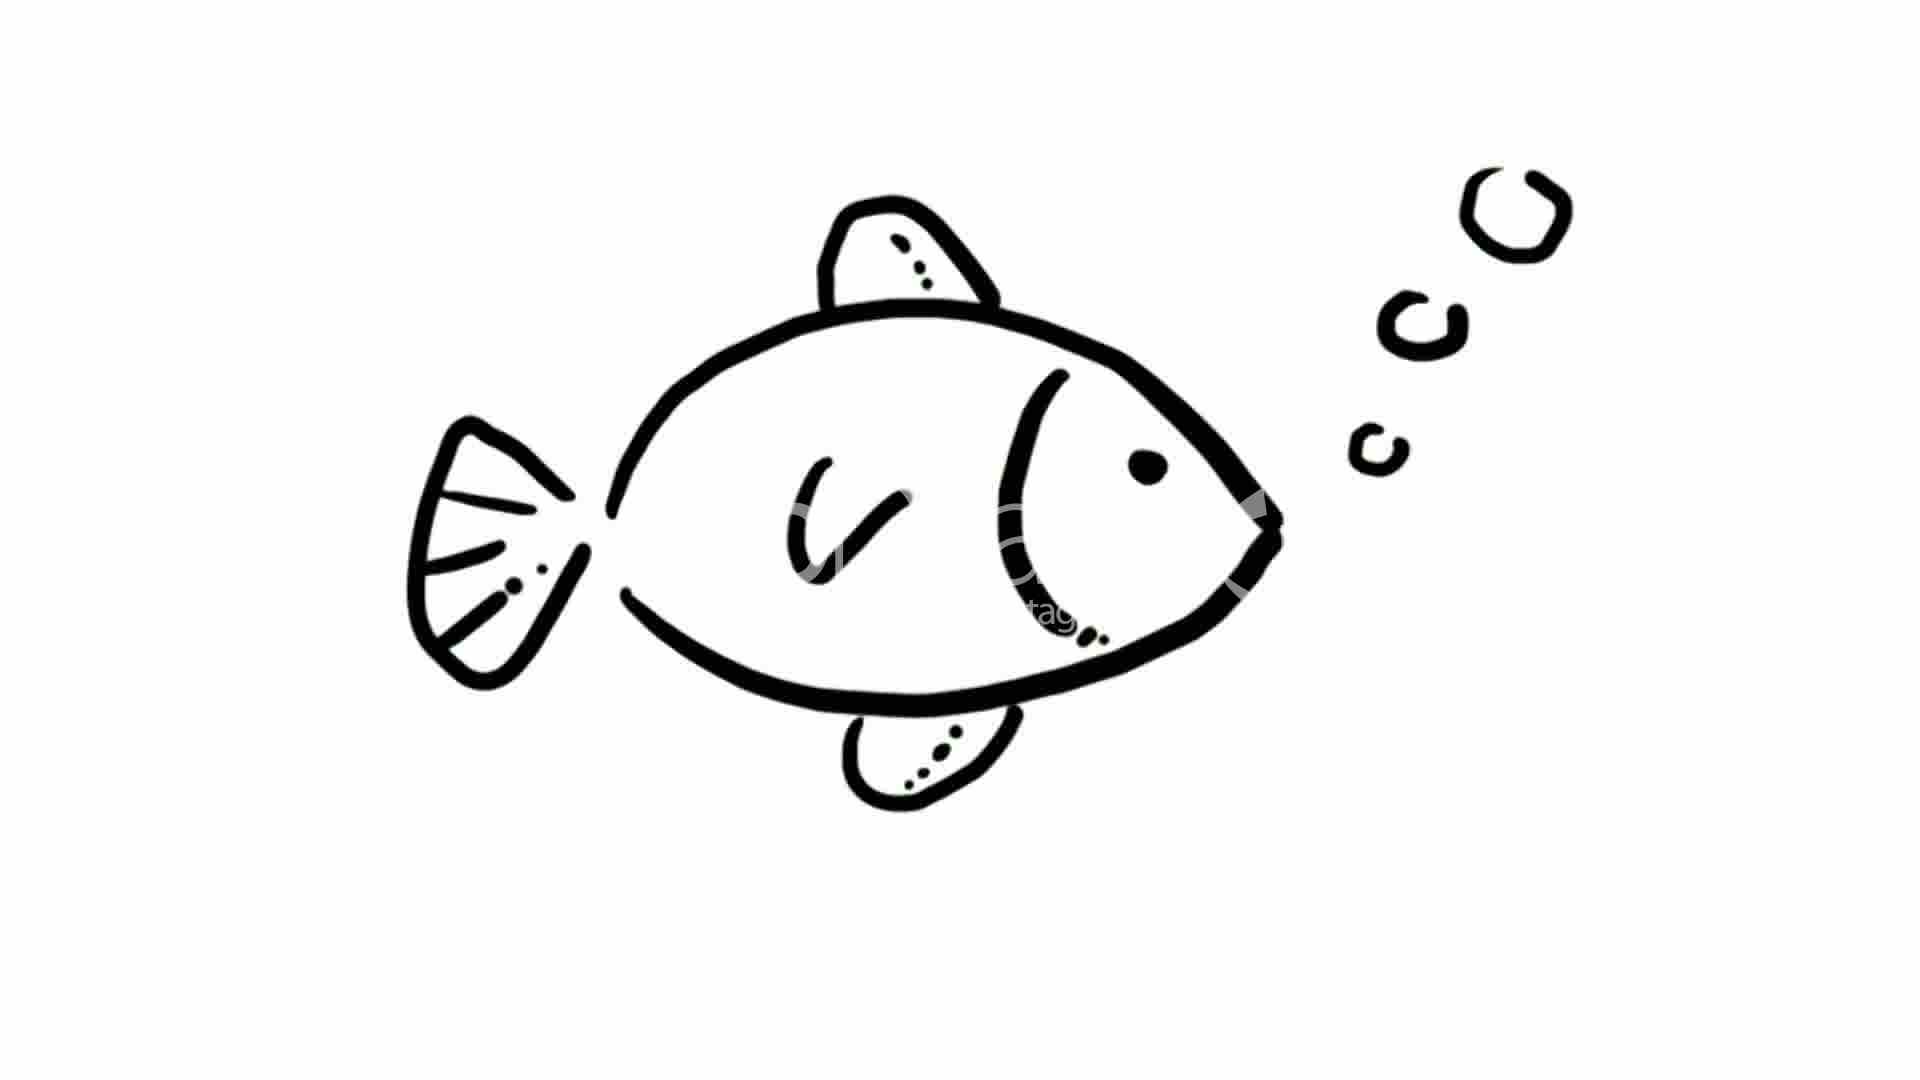 drawing of fish swimminghand painting video materialsketchchildrenchildhoodkindergartennaivecutesketchesstick figurechildren paintingsearly - Drawing Pictures For Kindergarten